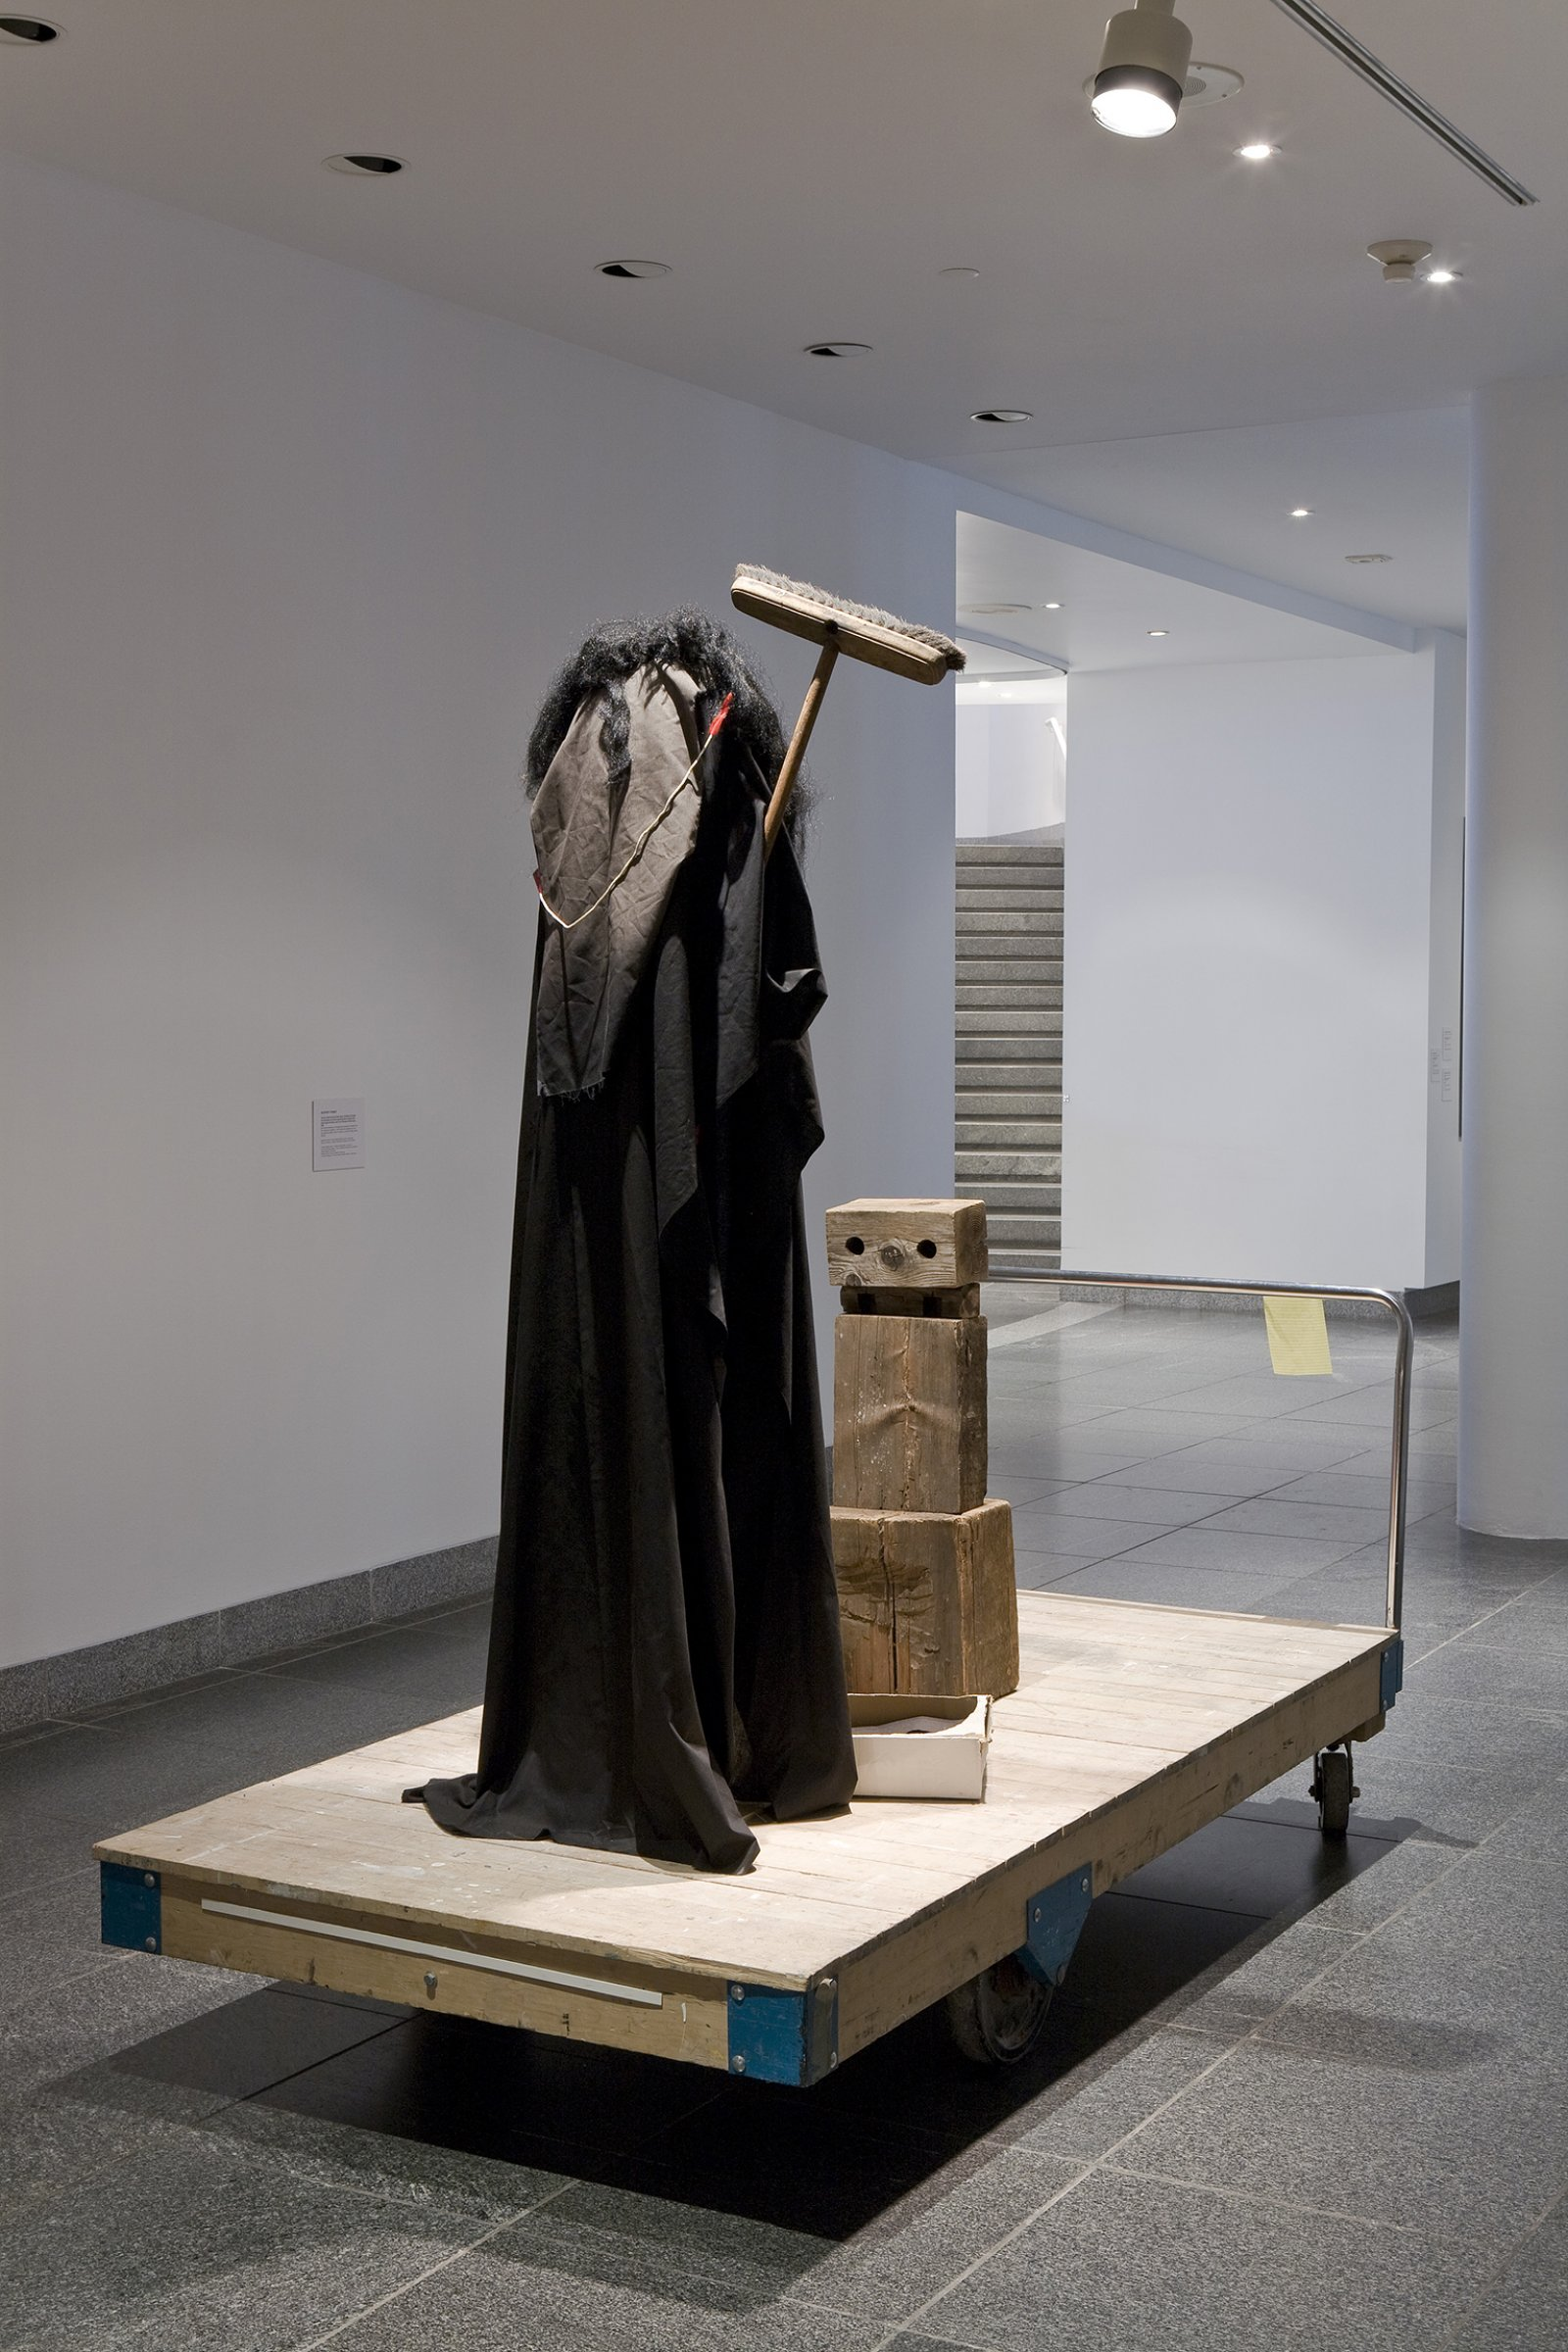 Geoffrey Farmer, I am by nature one and also many, dividing the single me into many, and even opposing them as great and small, light and dark, and in ten thousand other ways, 2006–2008, wood, fabric, broom, wig, dimensions variable by Geoffrey Farmer